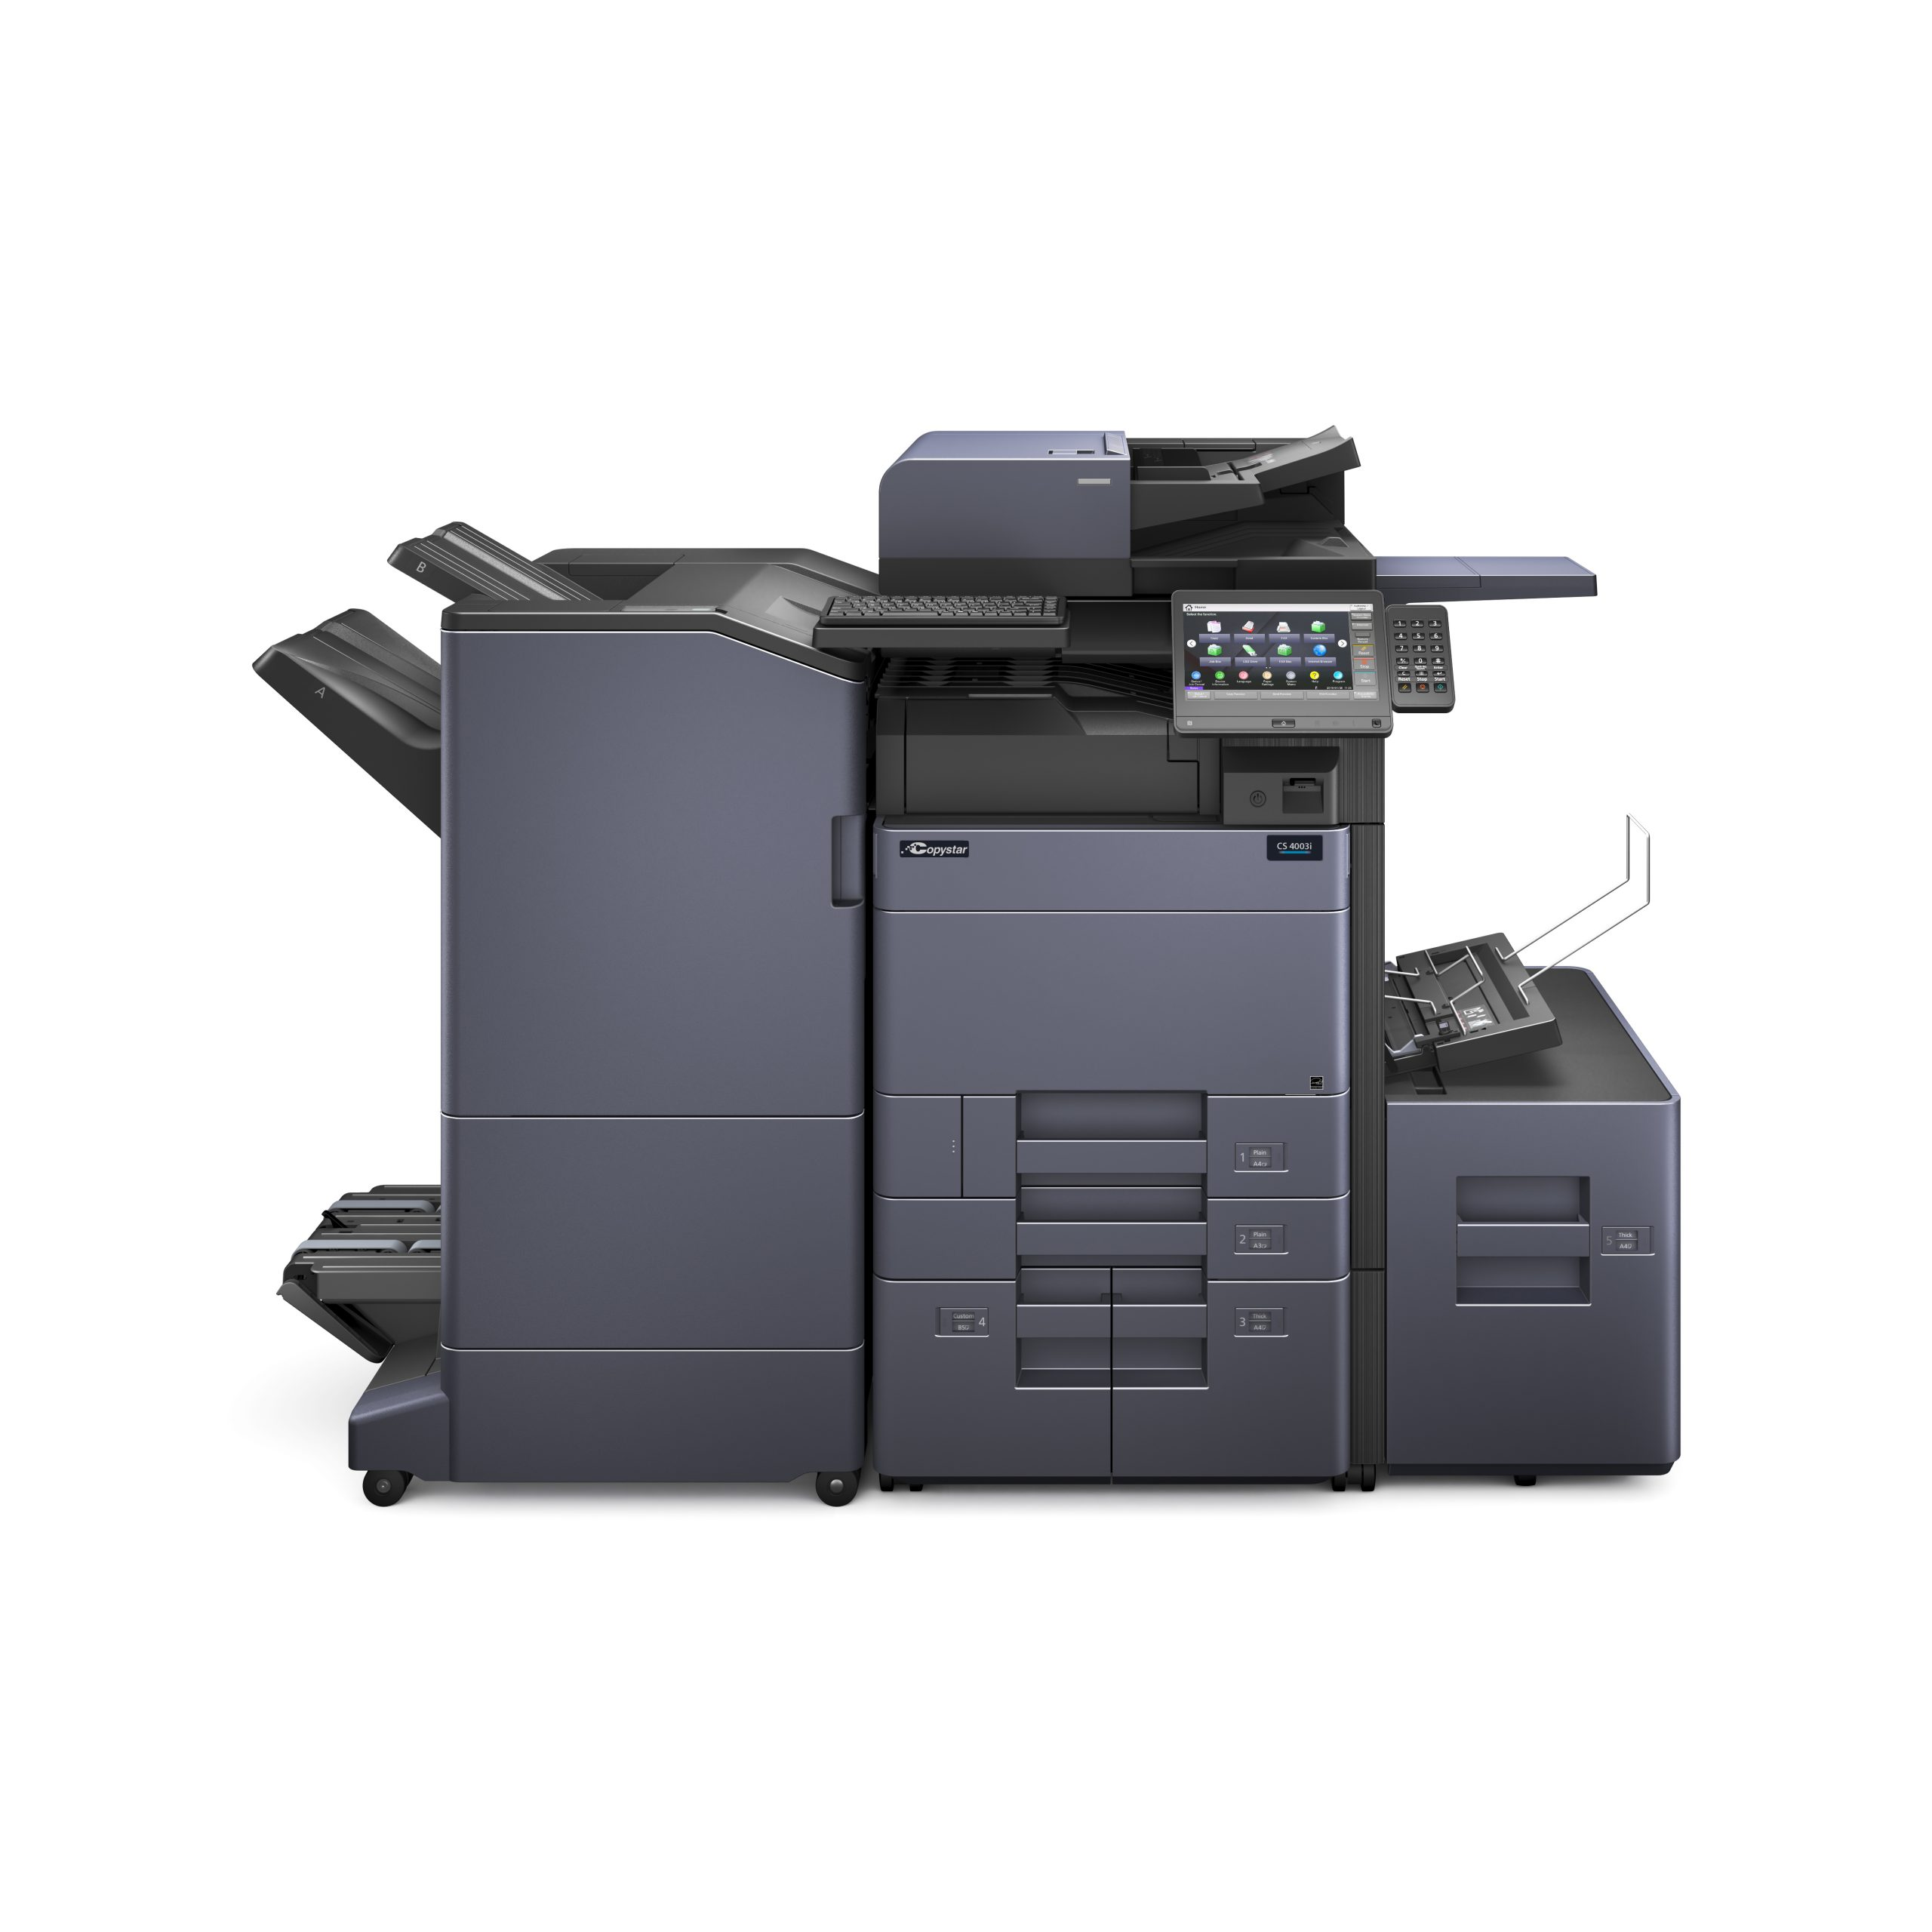 kyocera CS_4003i Copier Lease Minnesota